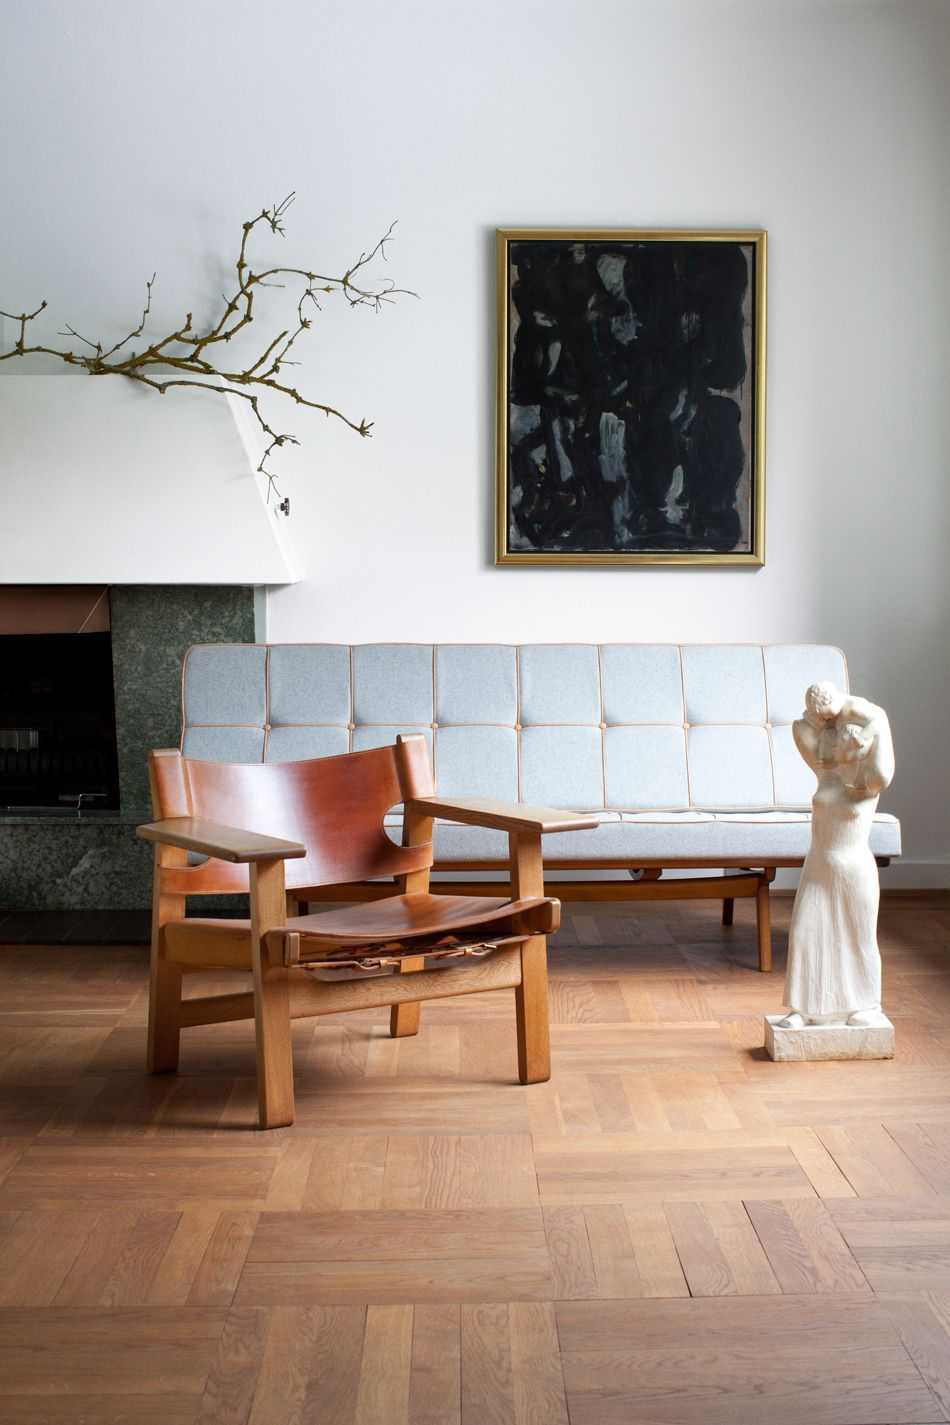 Spanish Chair by Børge Mogensen from Fredericia Furniture